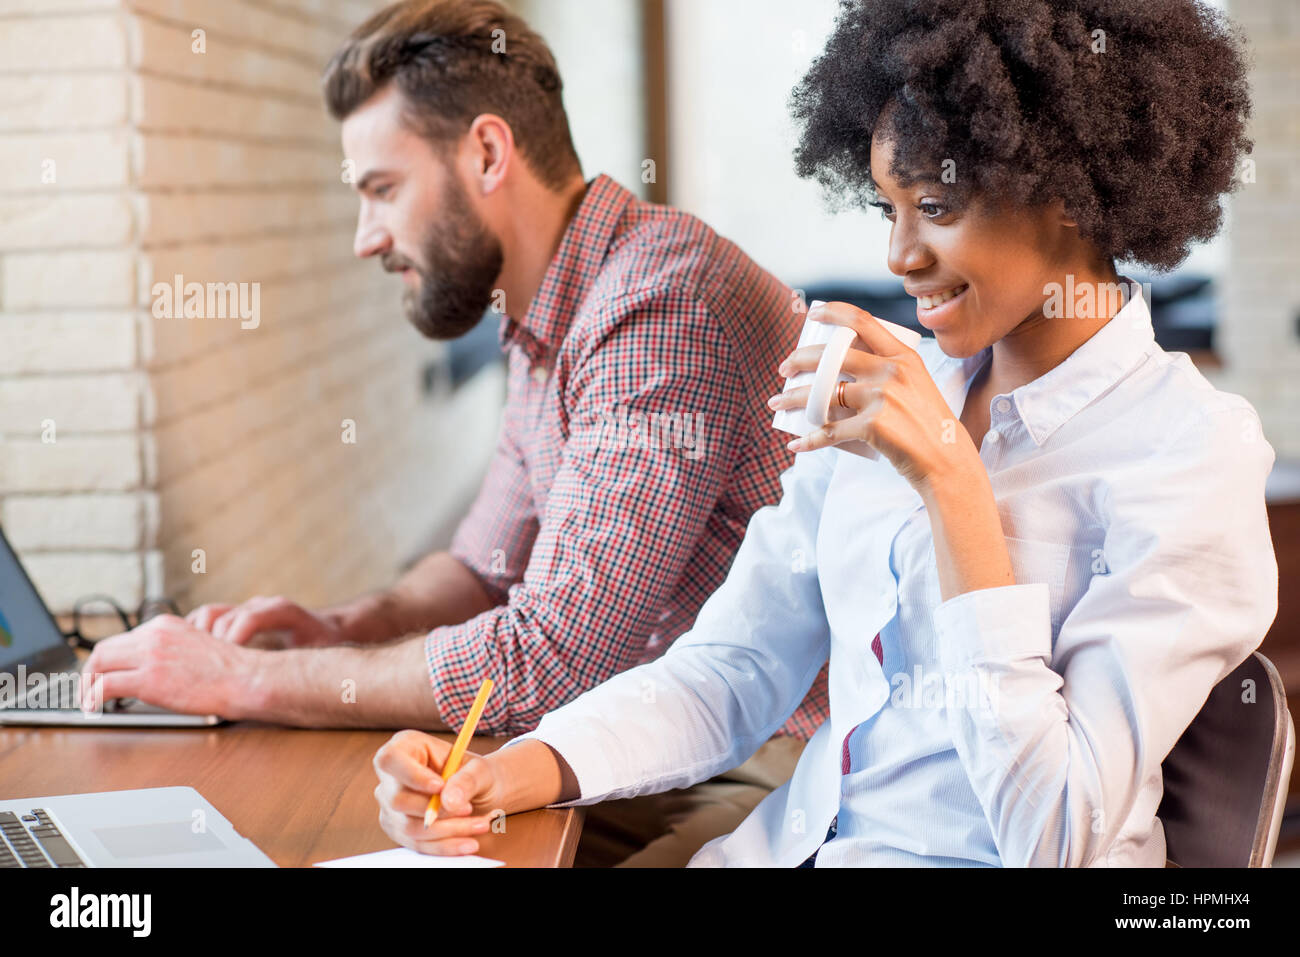 Coworkers working with laptop indoors - Stock Image